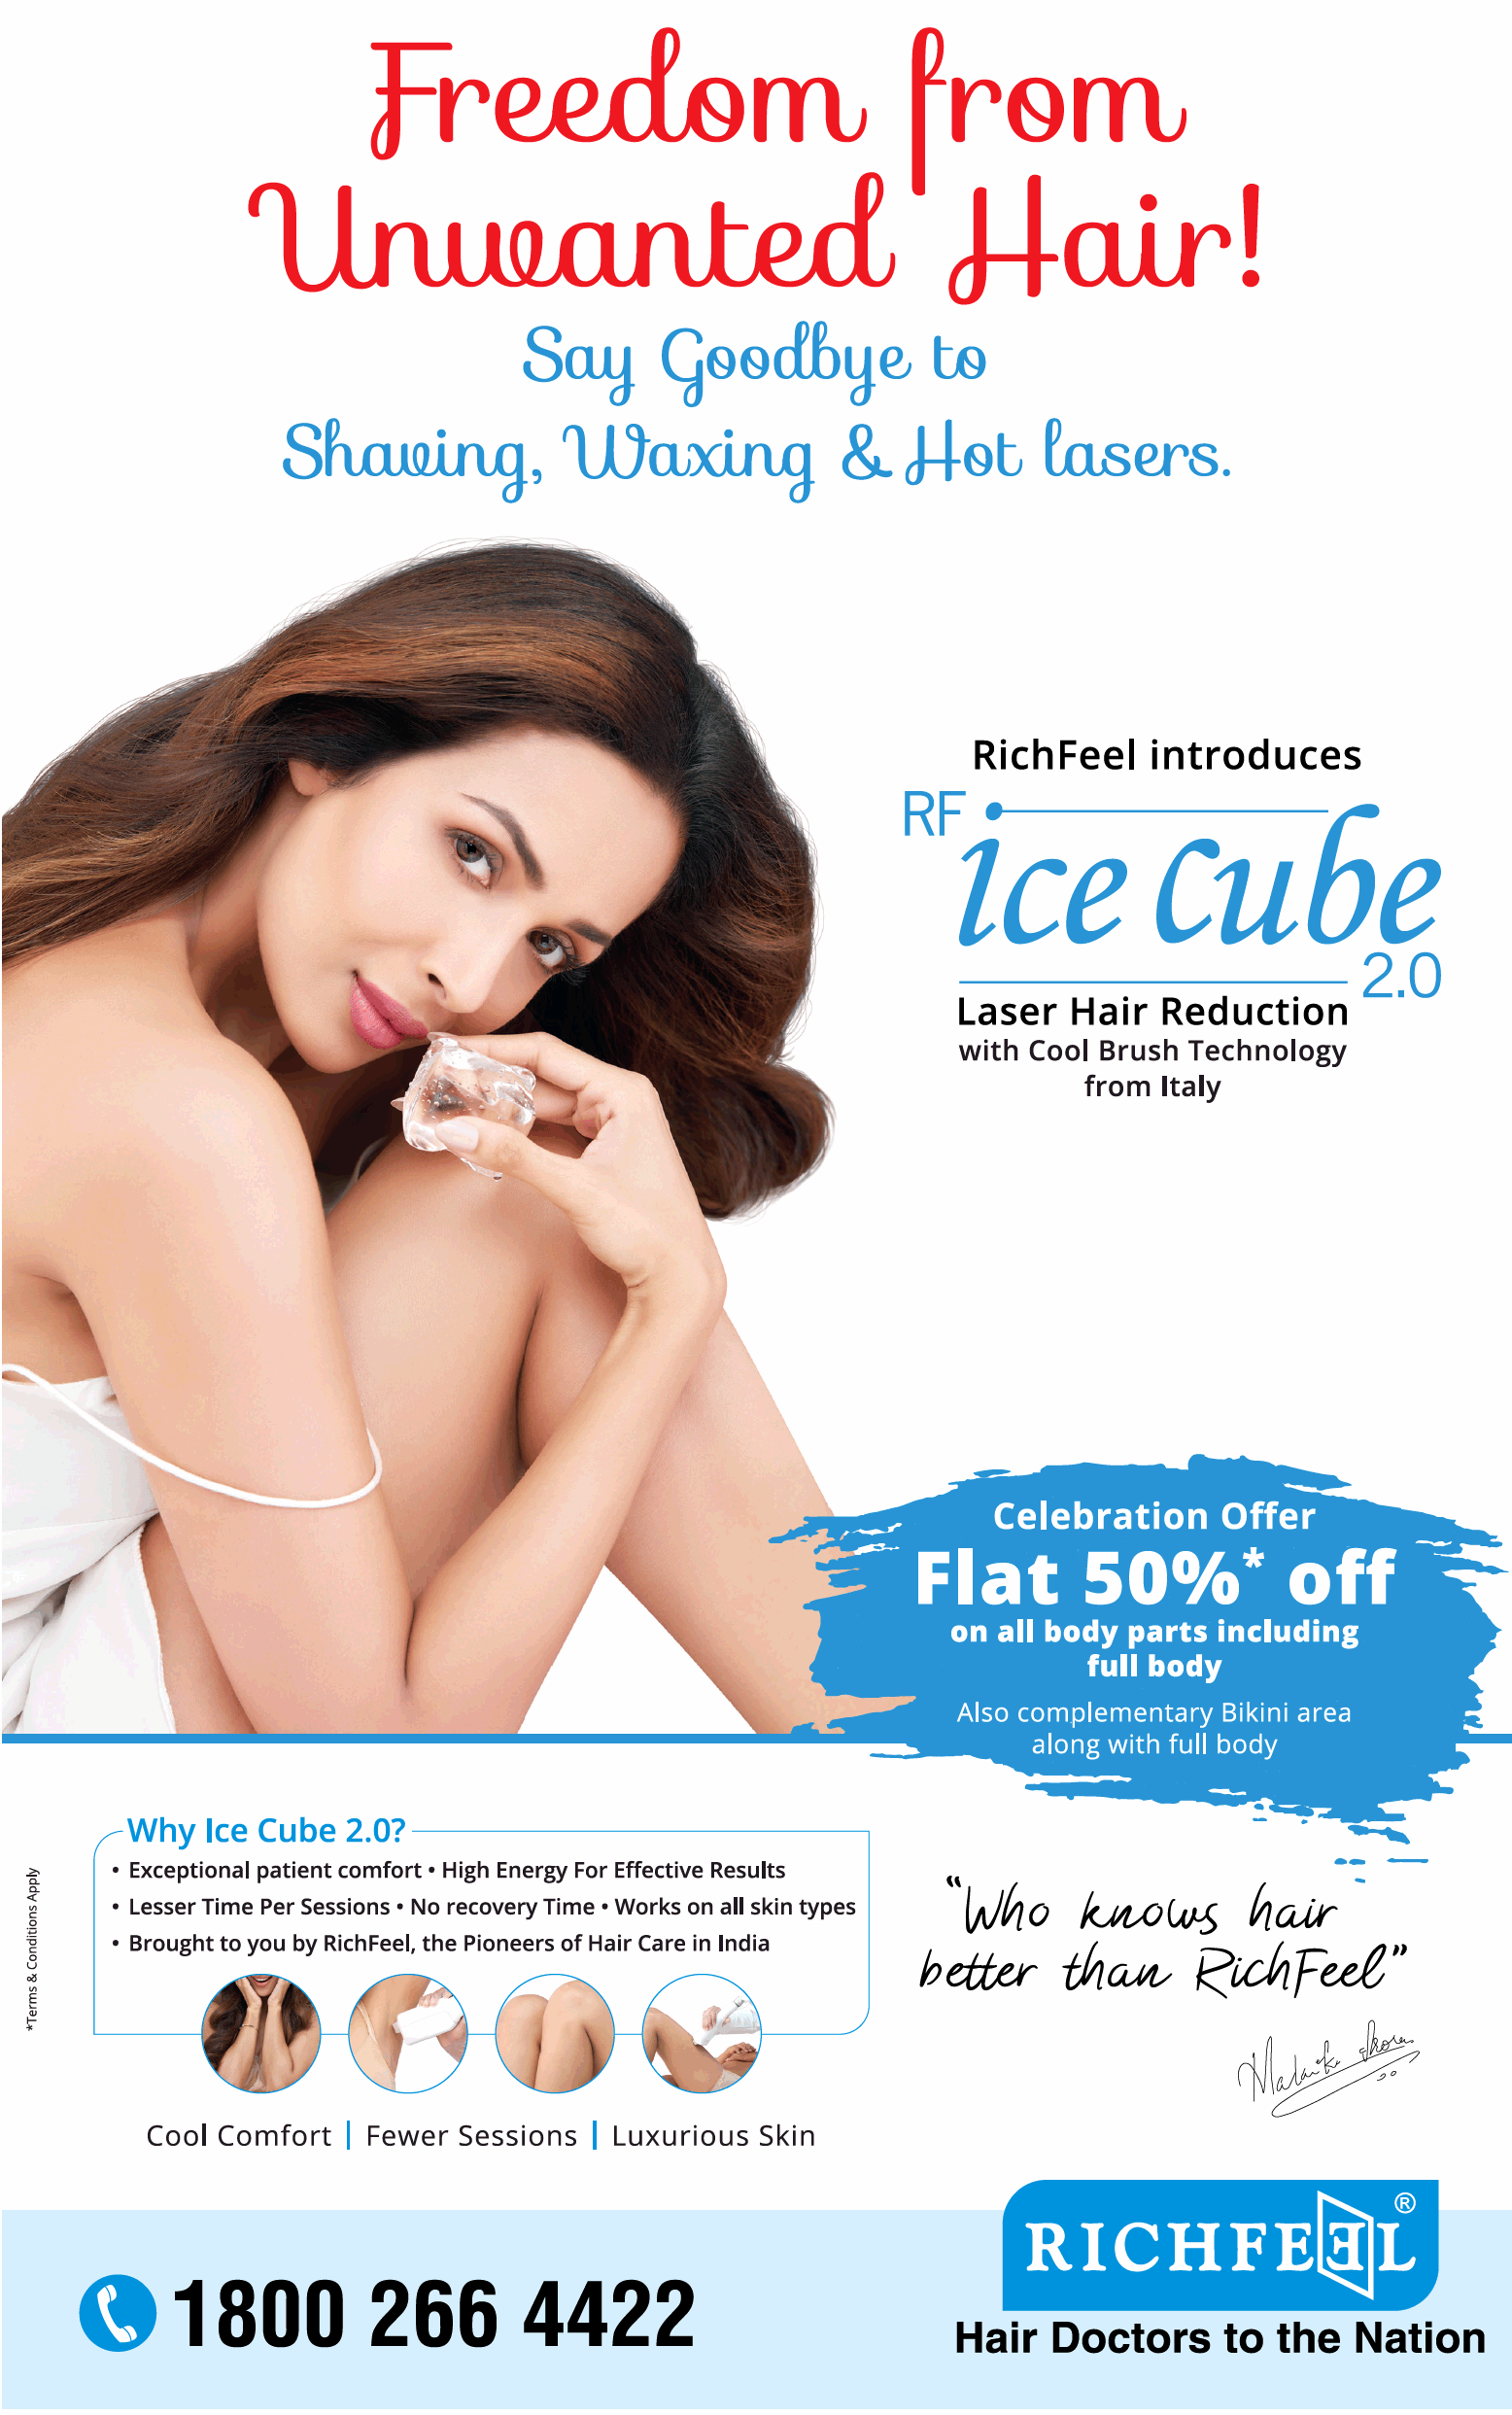 Richfeel Ice Cube Laser Hair Reduction Ad Advert Gallery